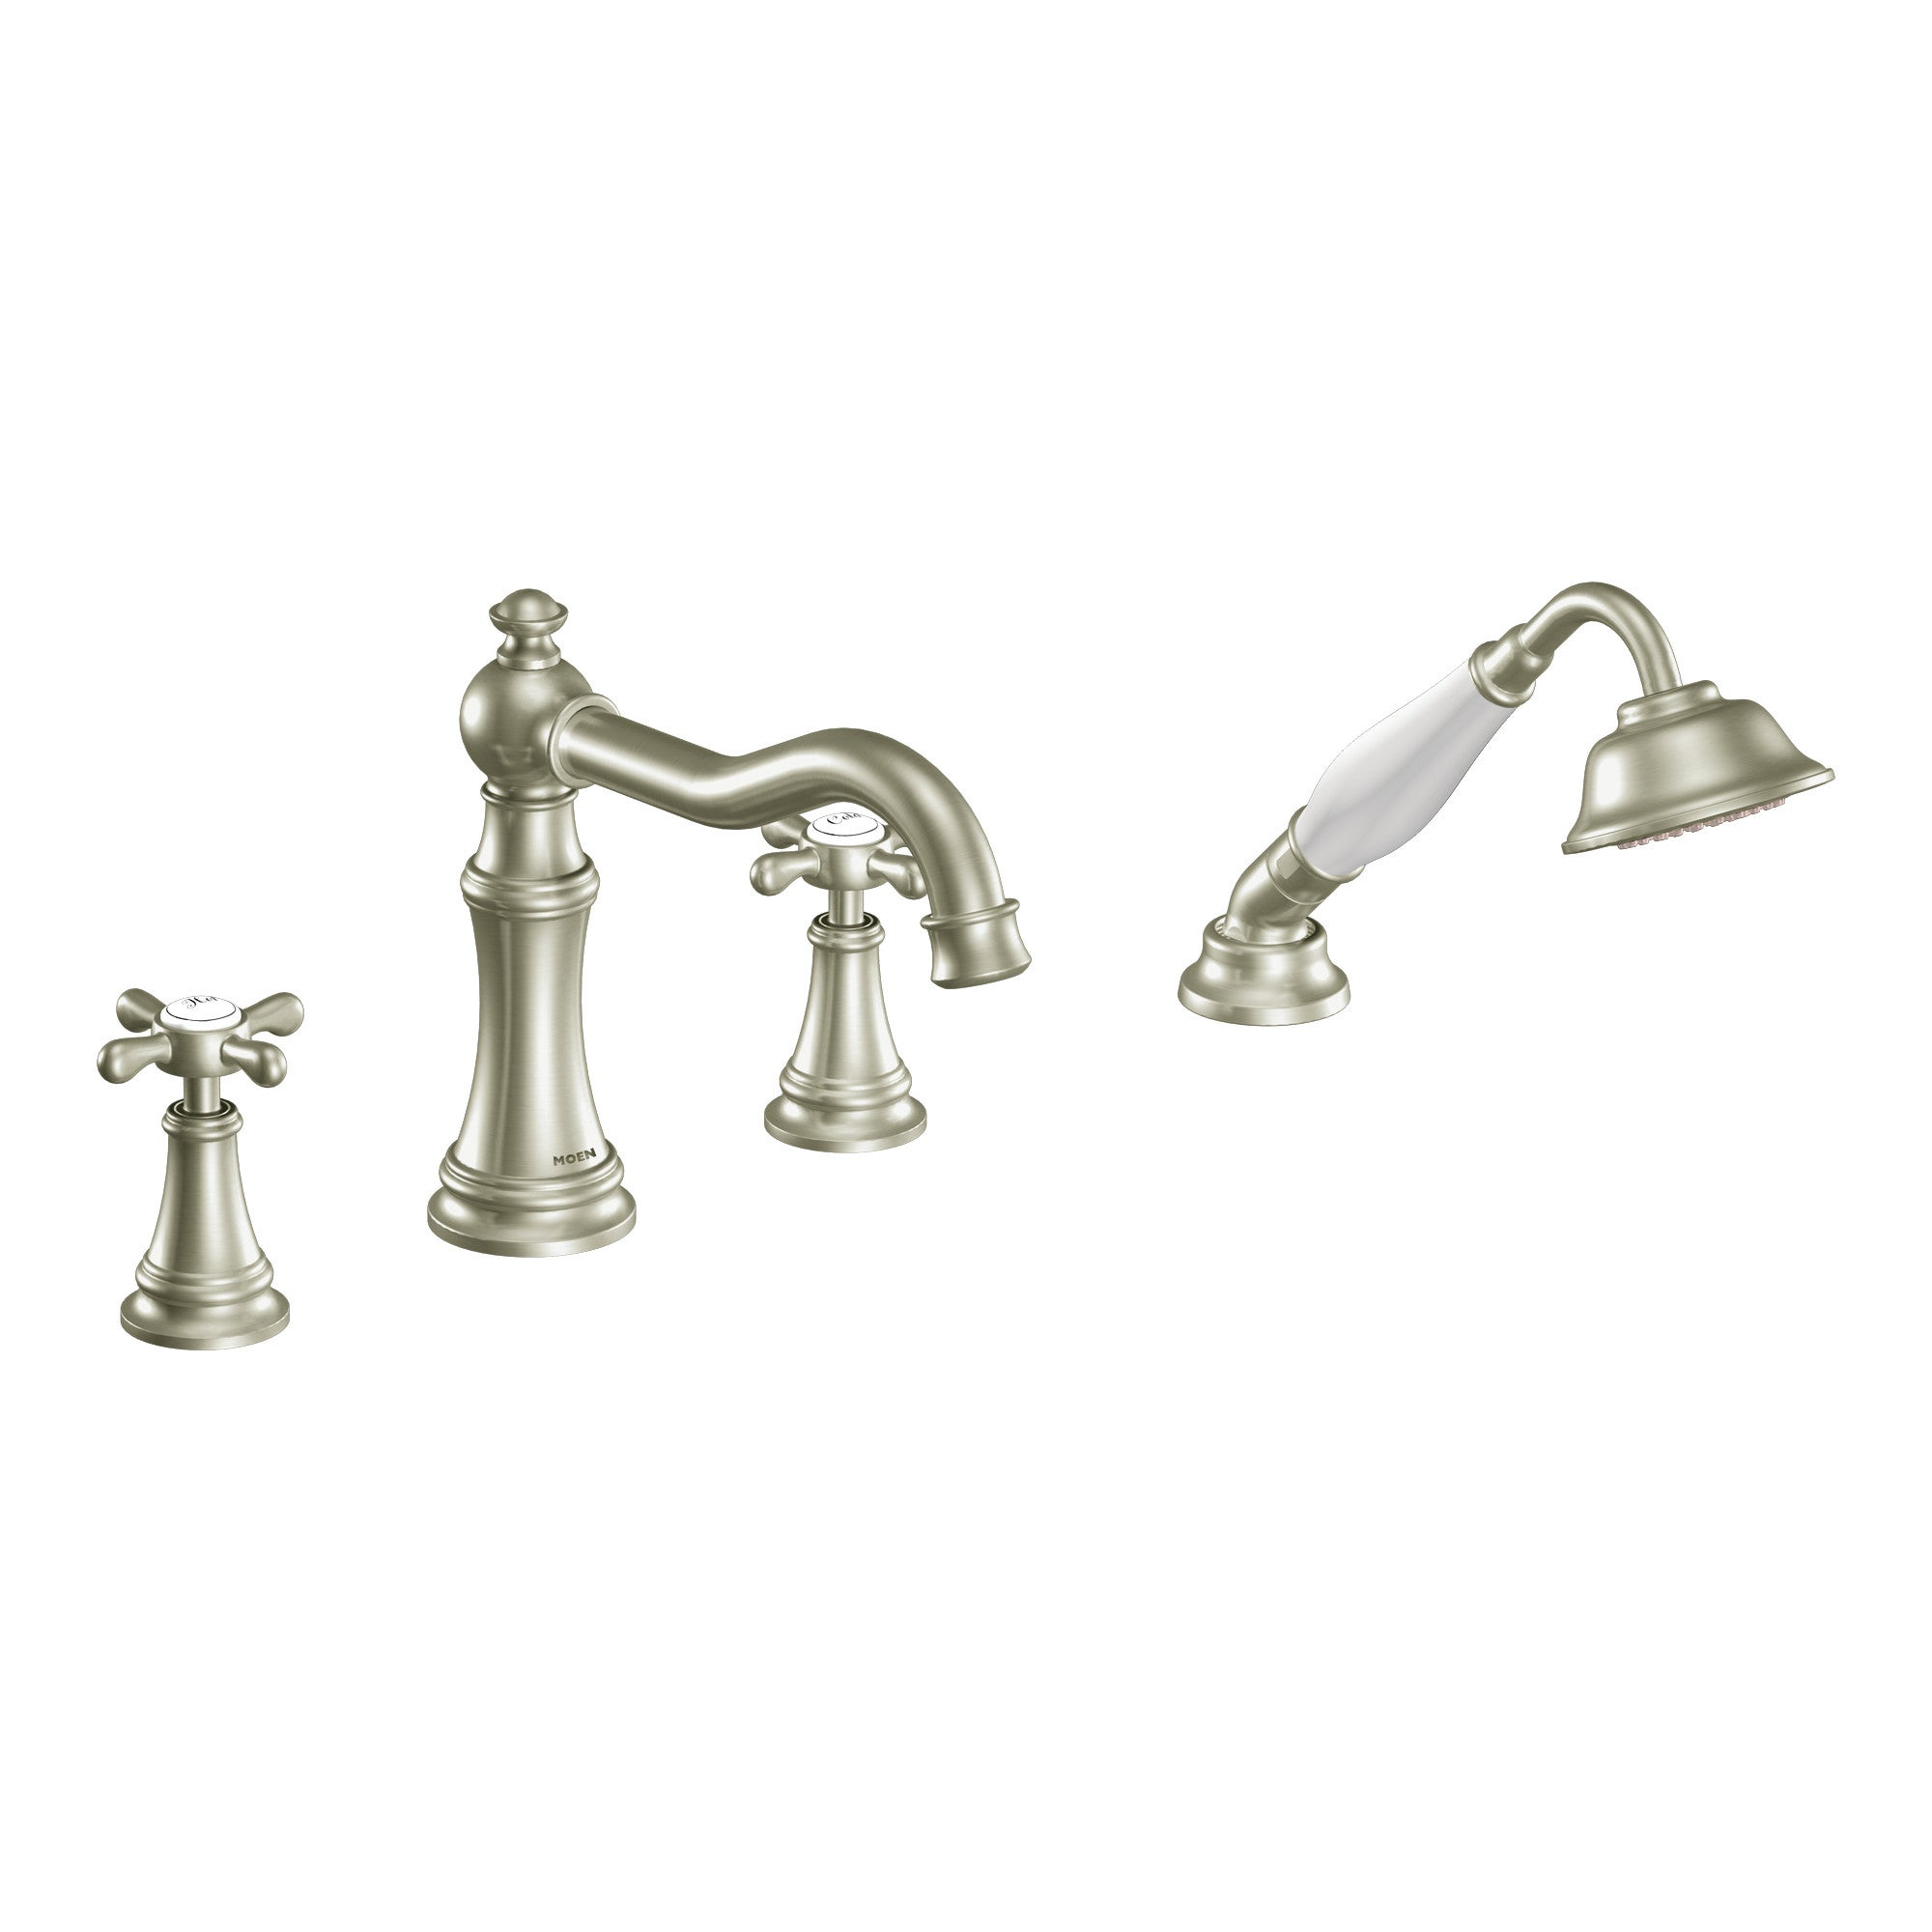 Moen Brushed Nickel Two-handle Tub Faucet